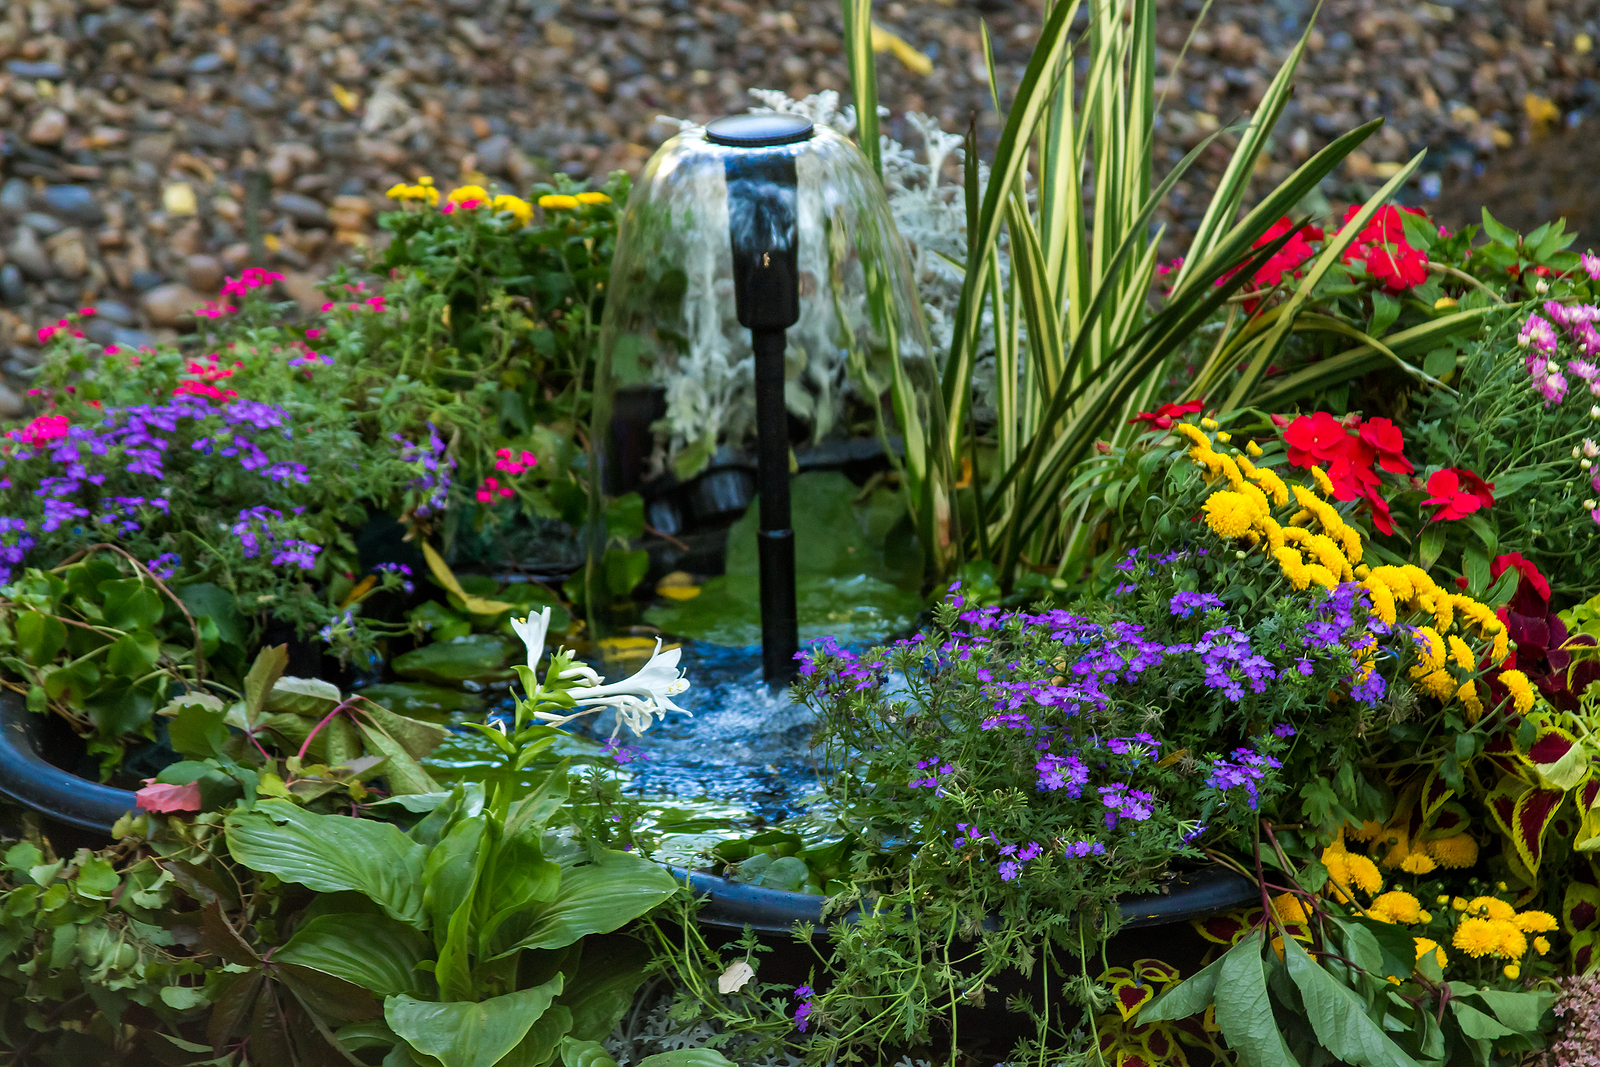 A small fountain in a pond with flowers